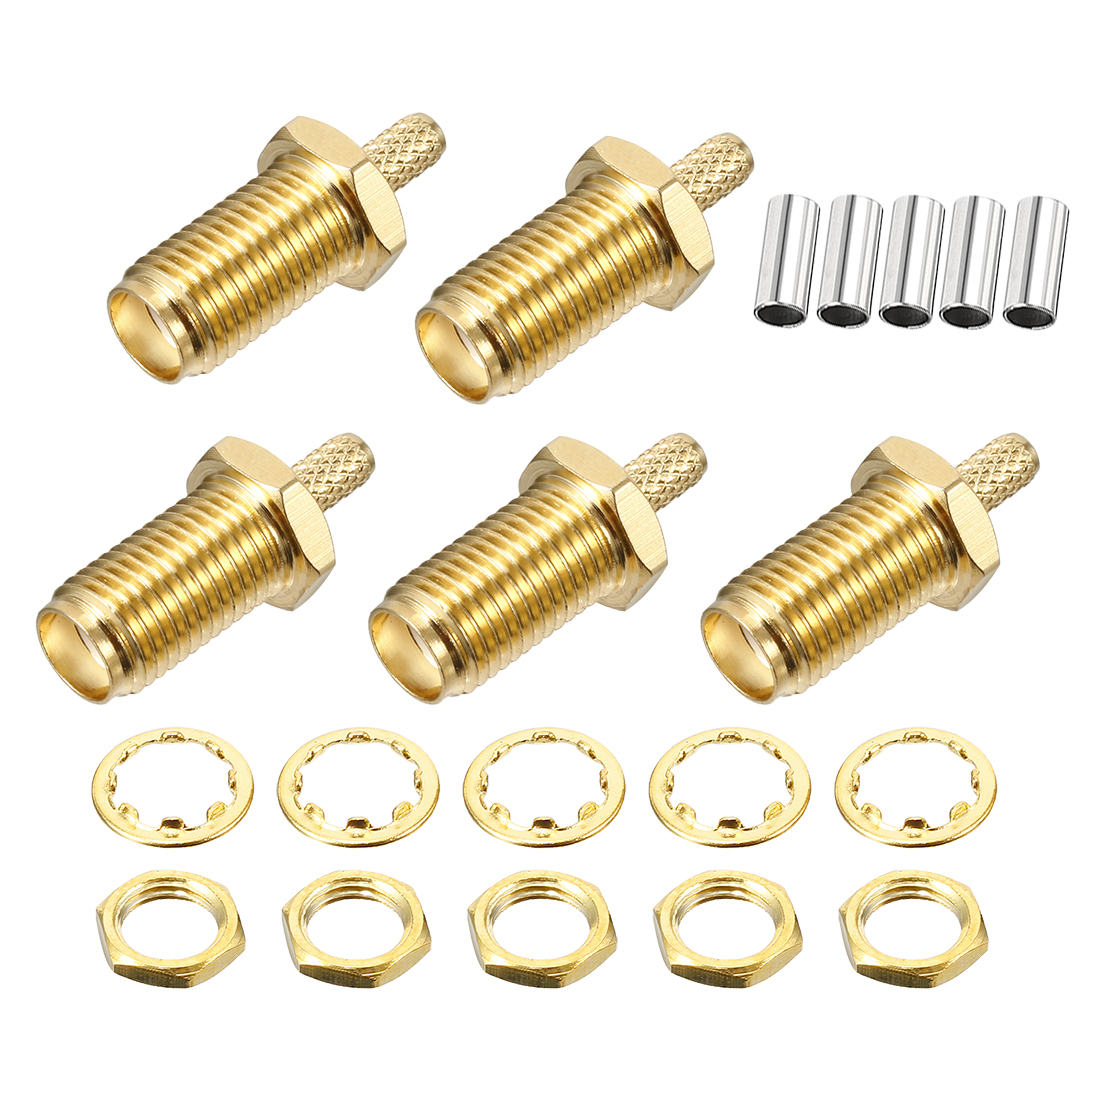 5 Pcs Gold Tone RP-SMA Female Straight Jack RF Coaxial Adapter Connector